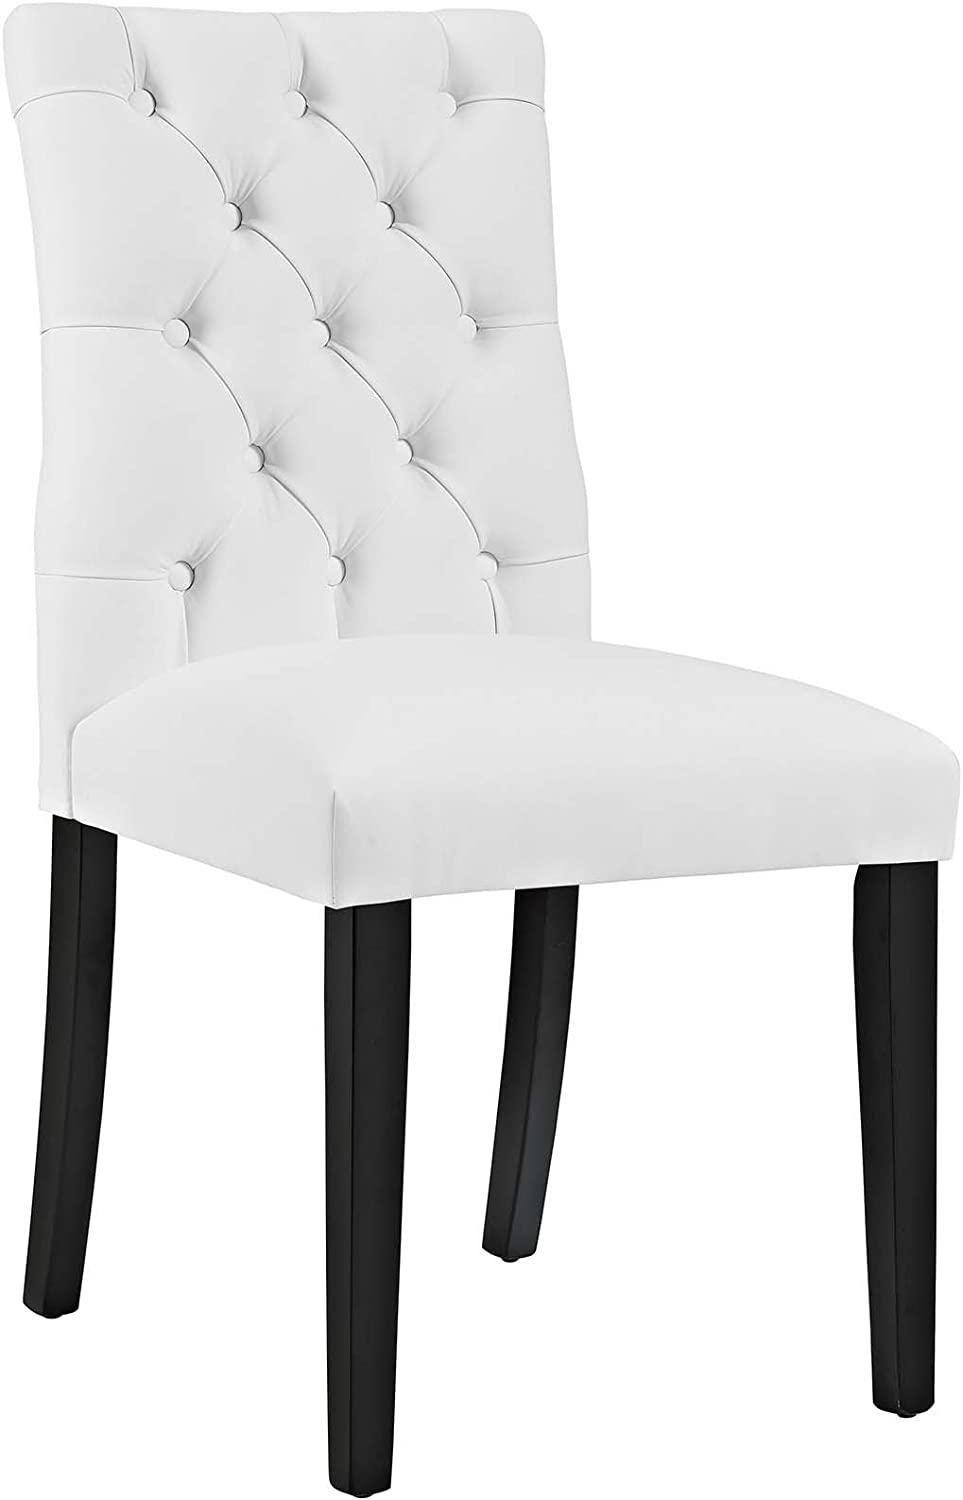 Modway MO- Duchess Modern Tufted Button Faux Leather Upholstered Parsons, Dining Chair, White